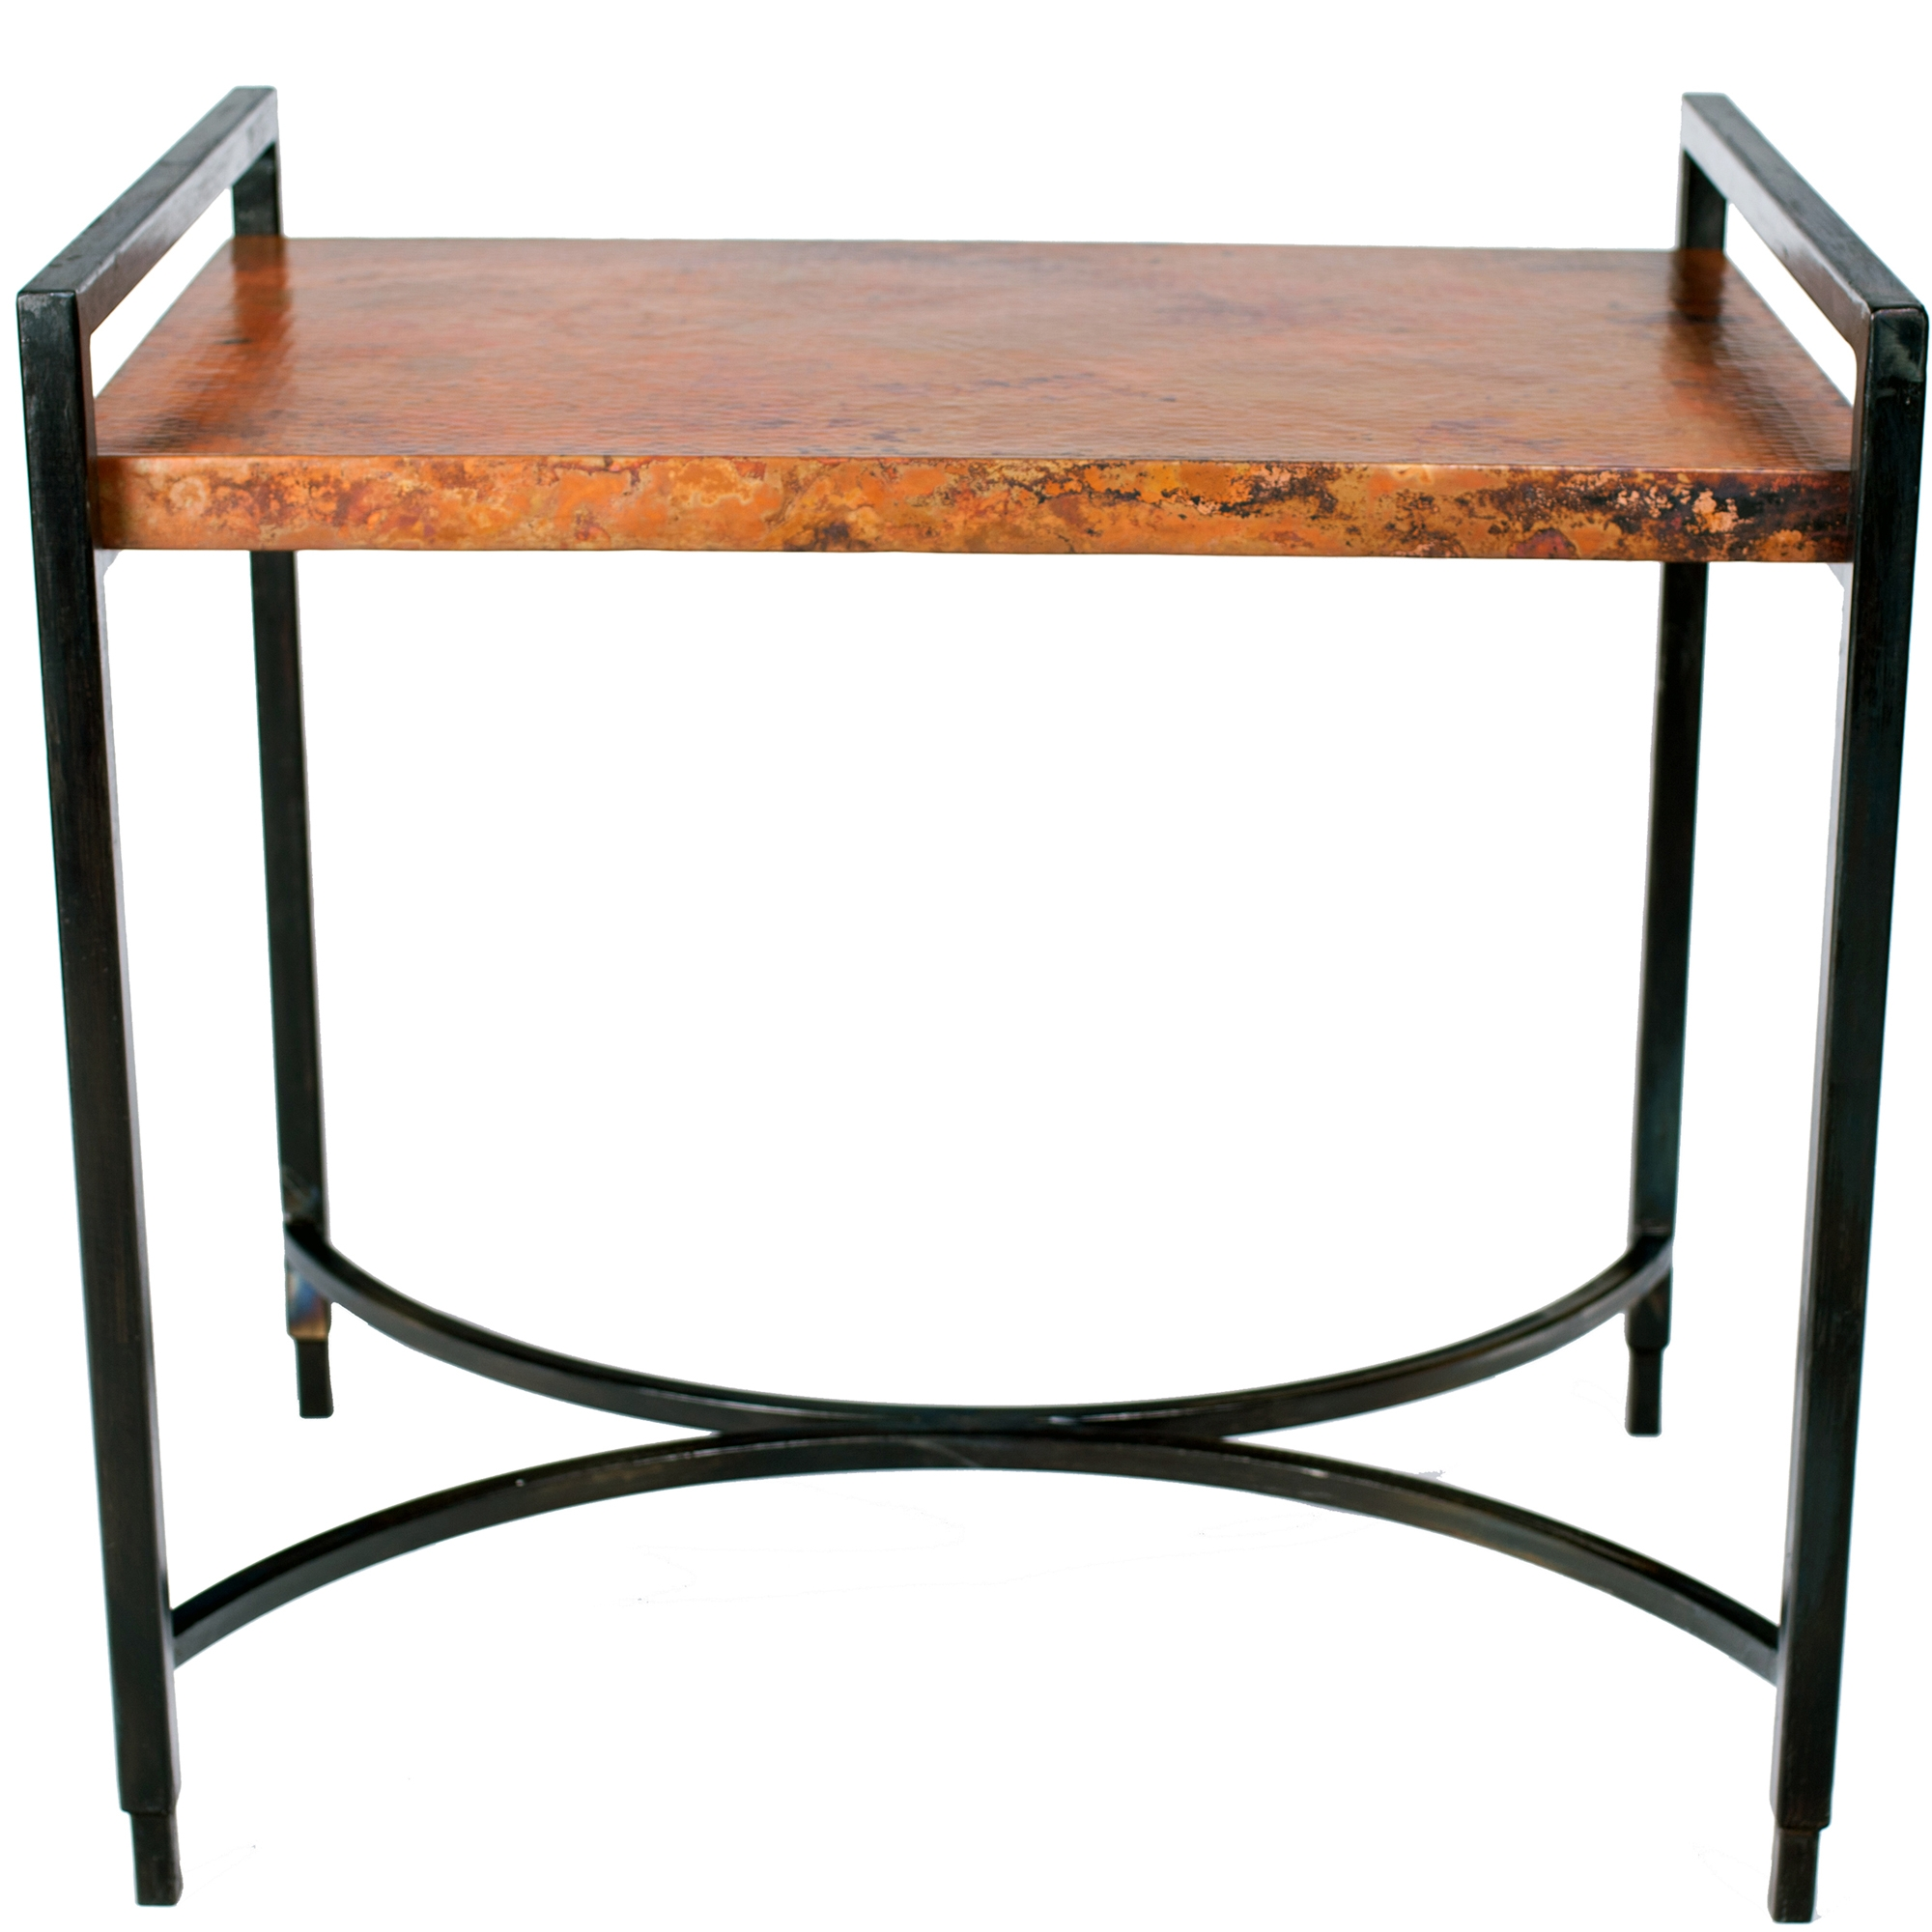 Copper Top Rectangular Coffee Table: TWI-BFM5-F-510A-3.jpg